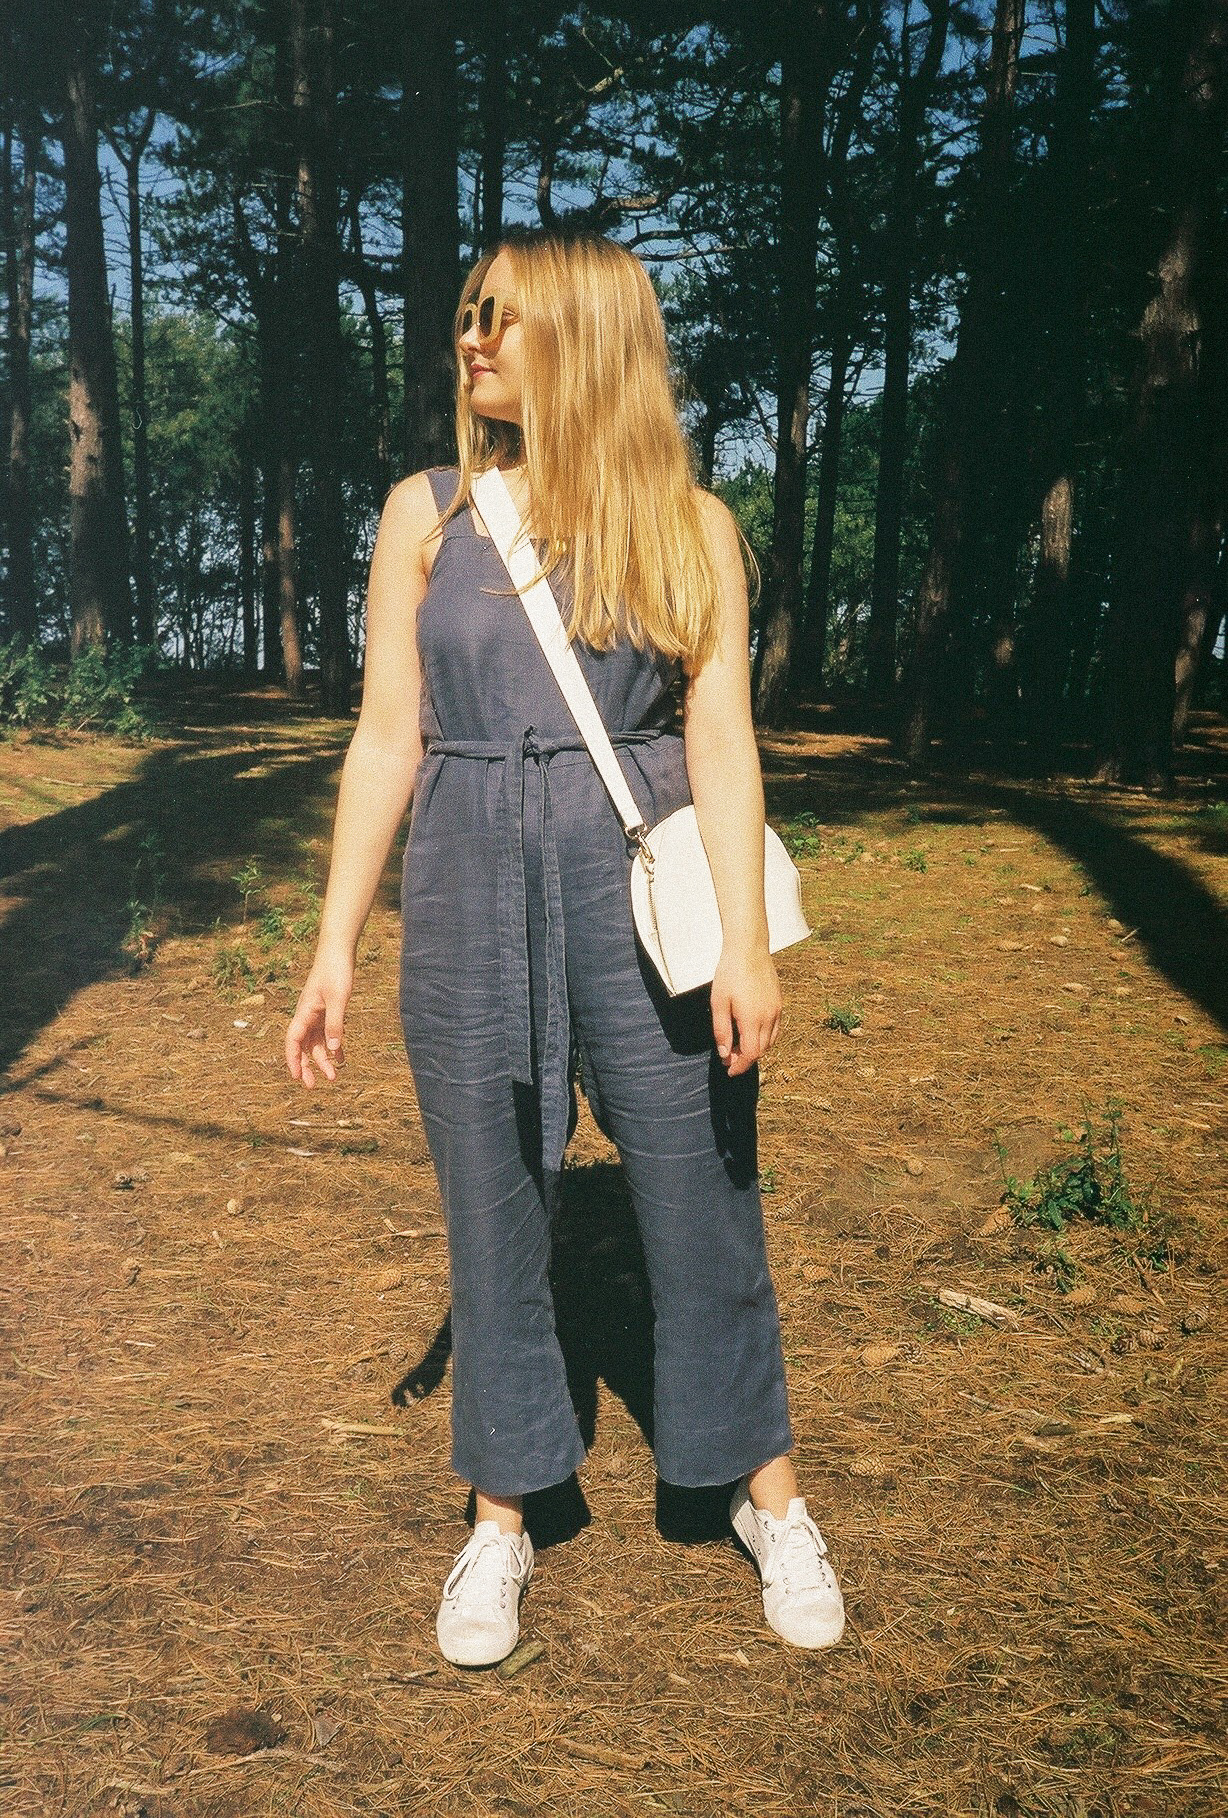 Jumpsuit -  Everlane   Shoes -  Muji   Bag - ASOS (sold out but available in black  here  and in brown  here )